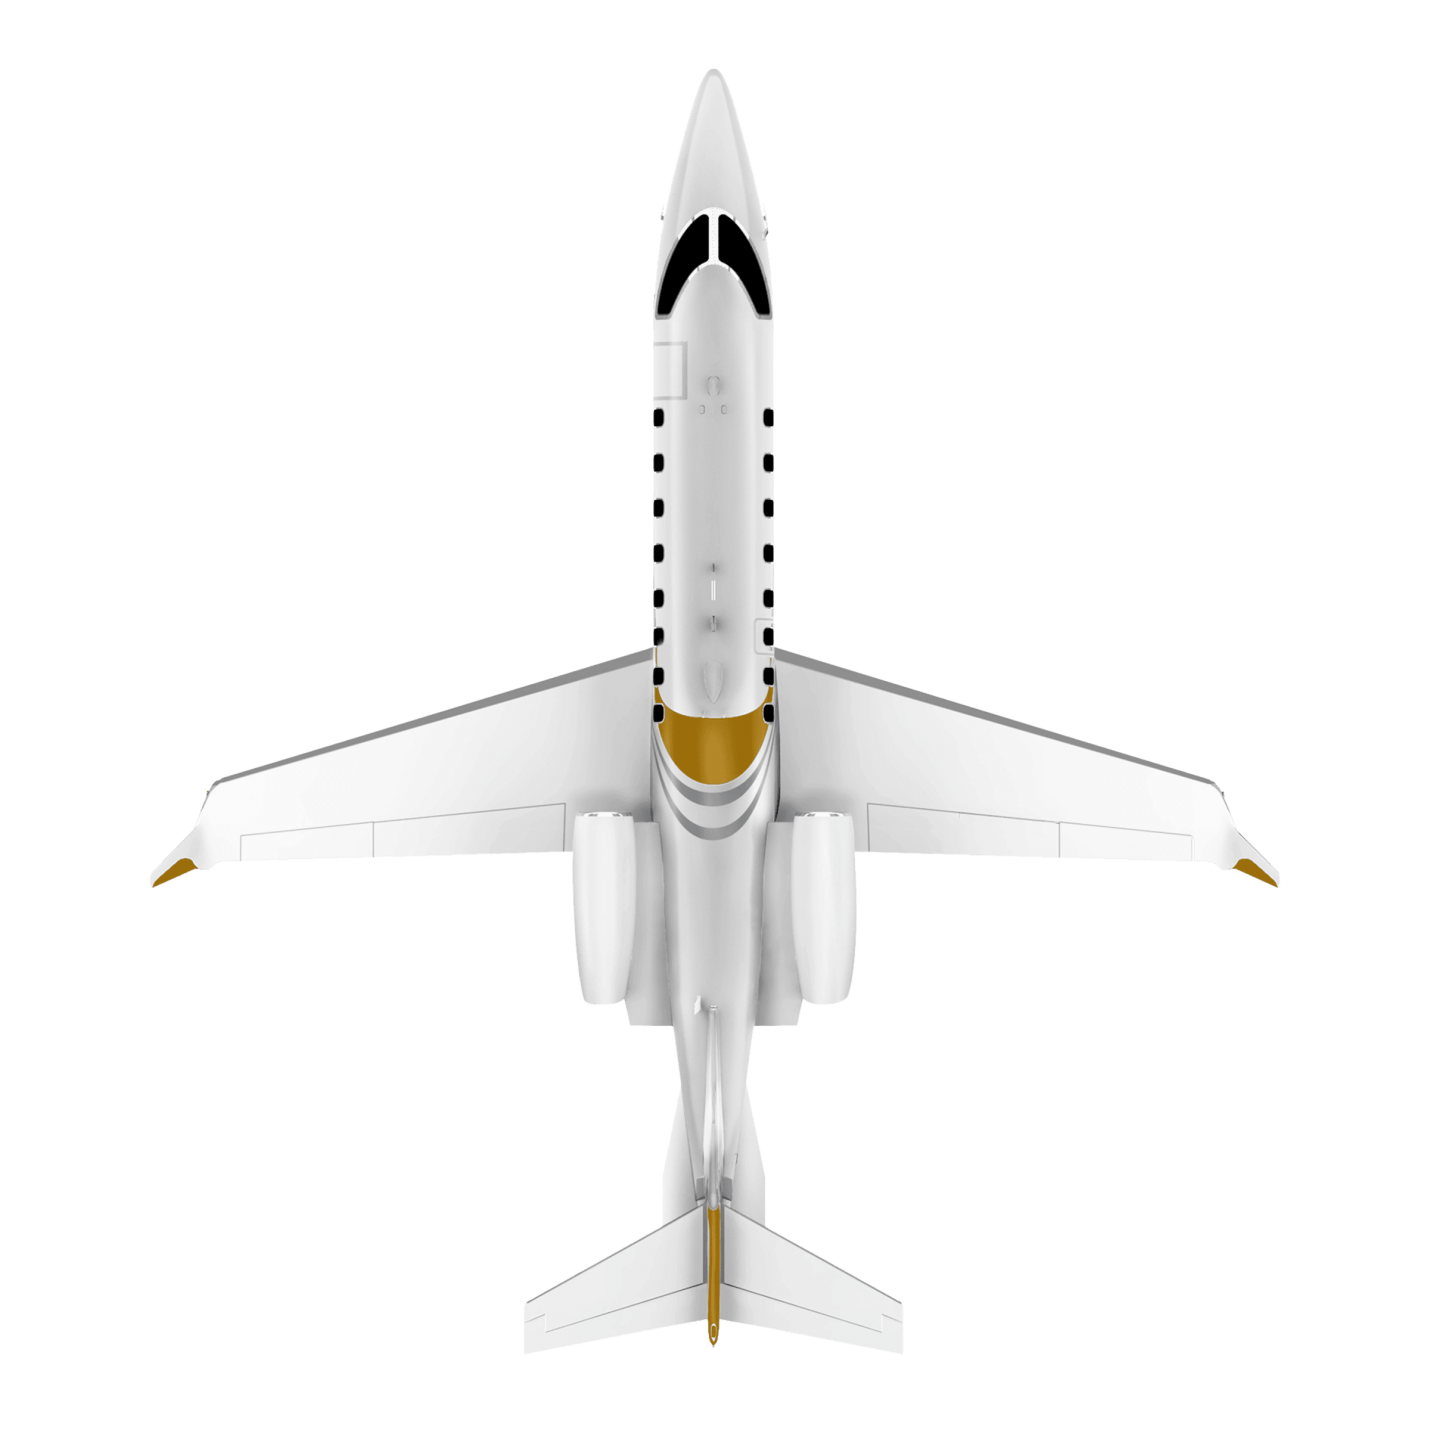 Learjet 75 top view